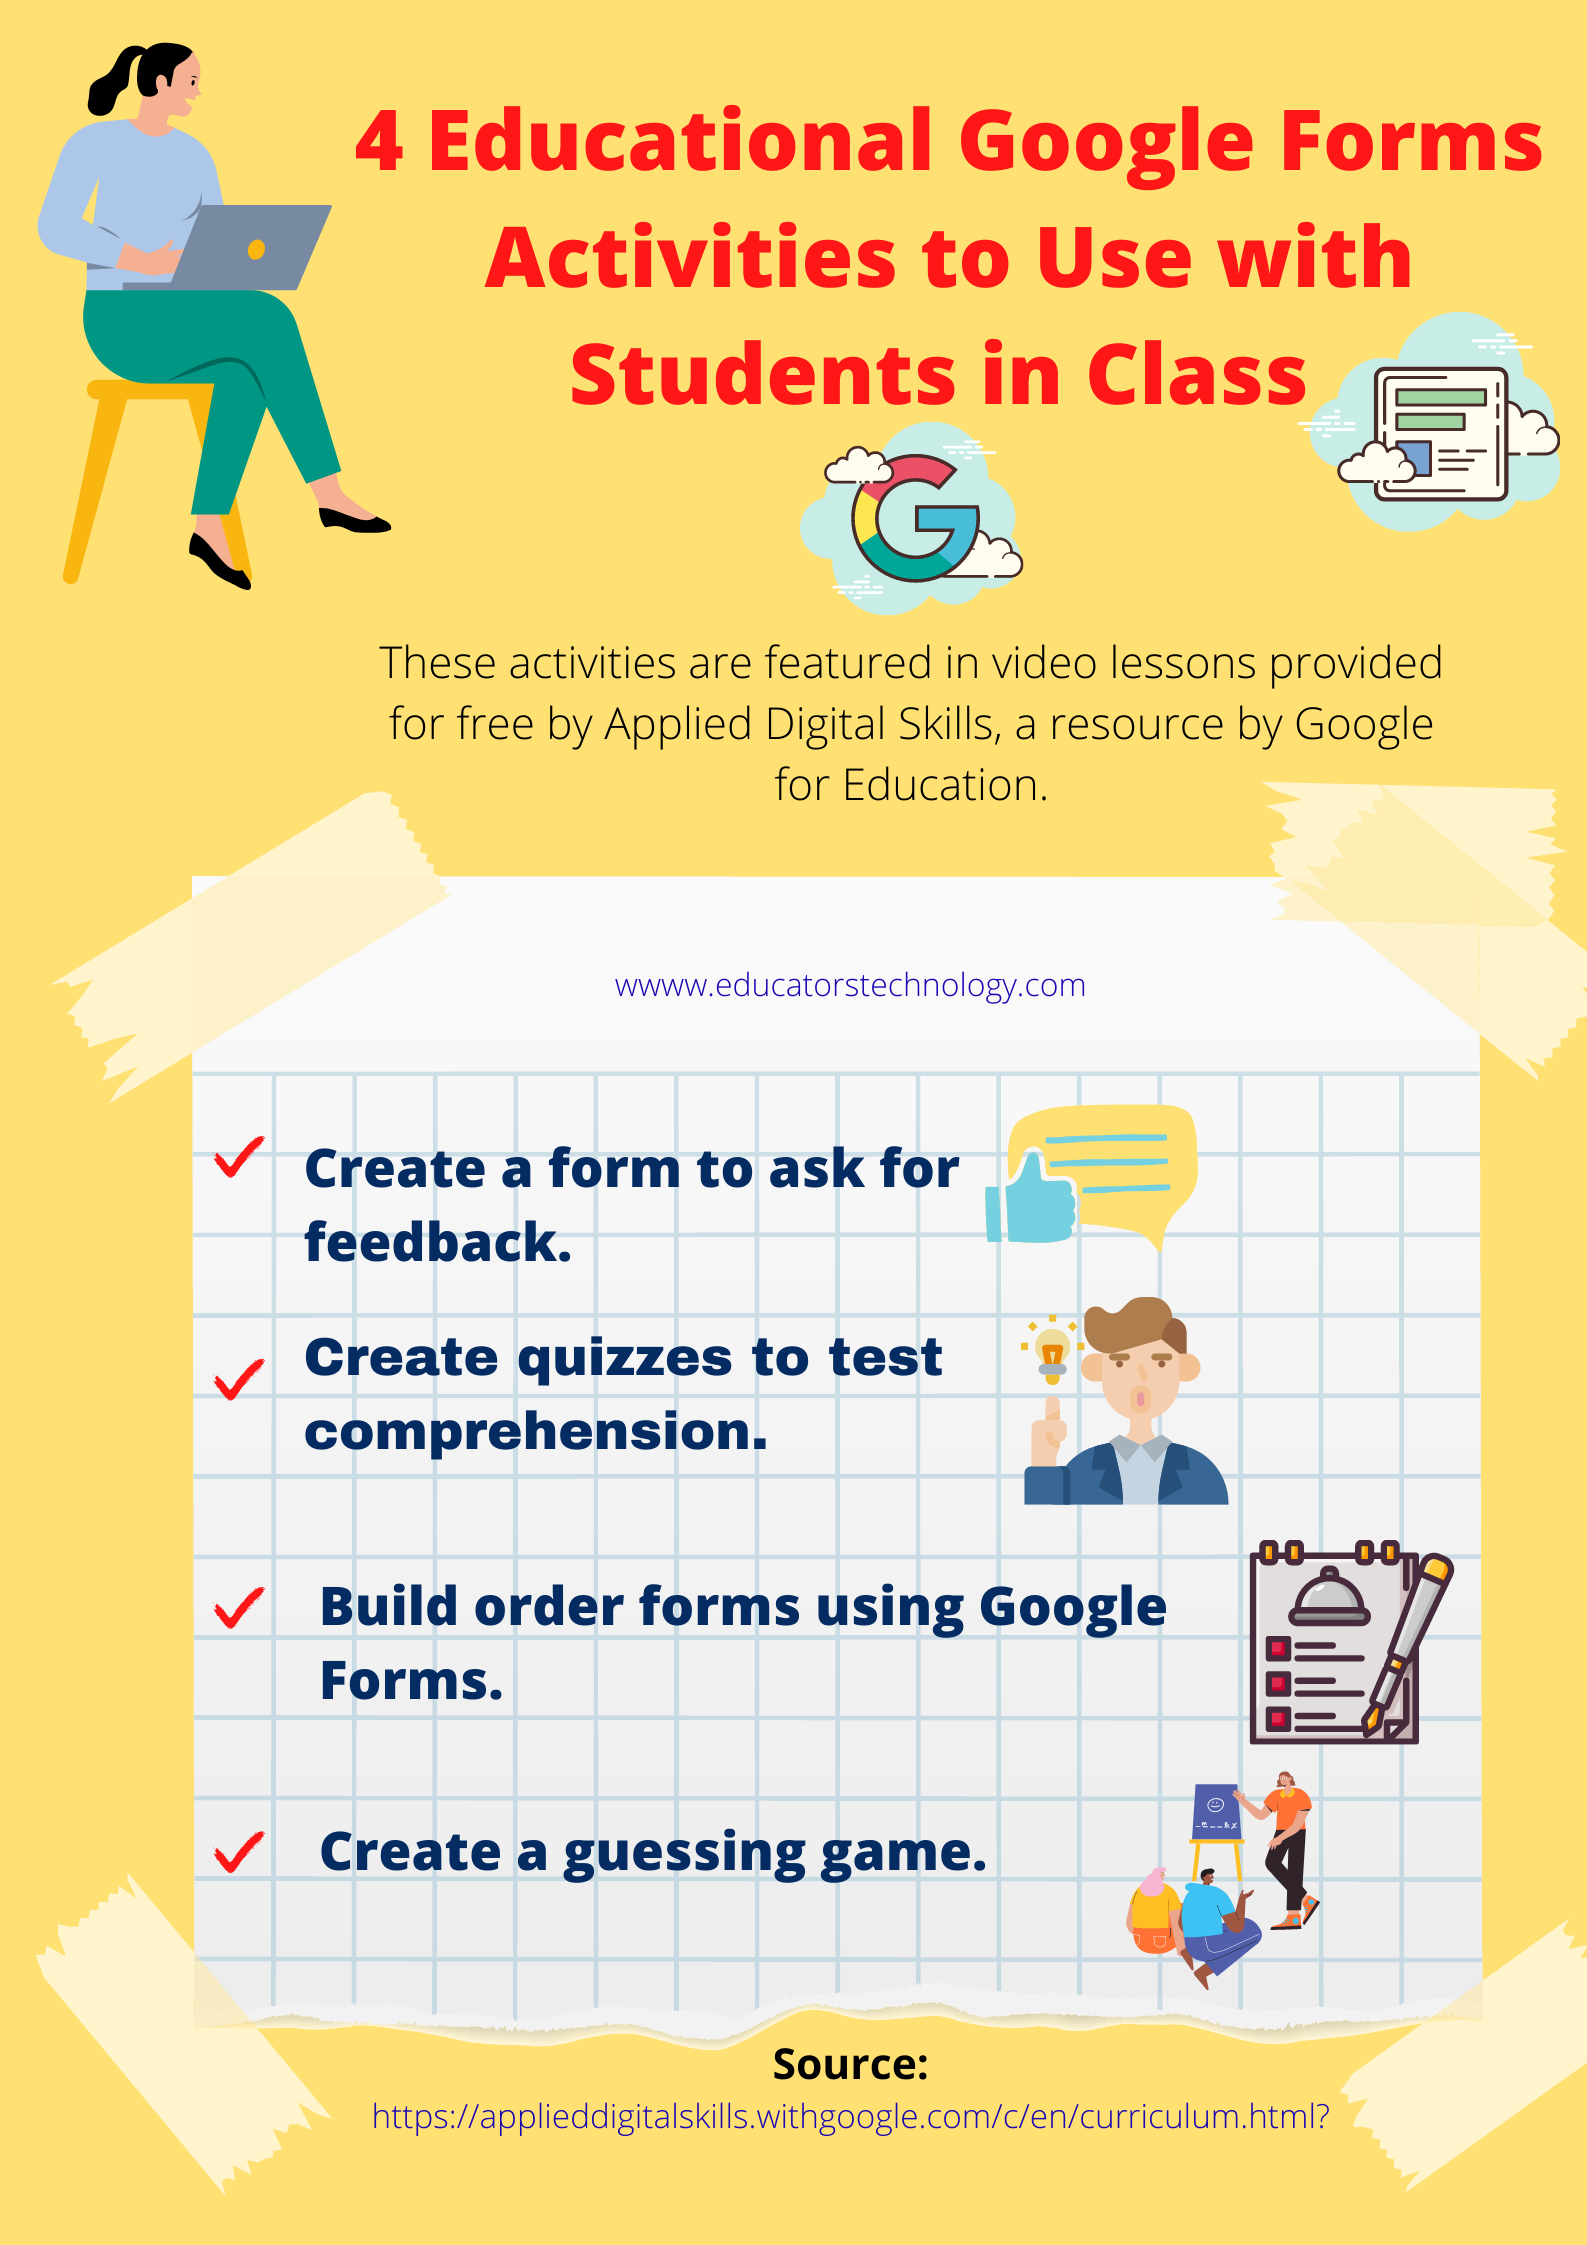 4 Educational Google Forms Activities to Use with Students in Class